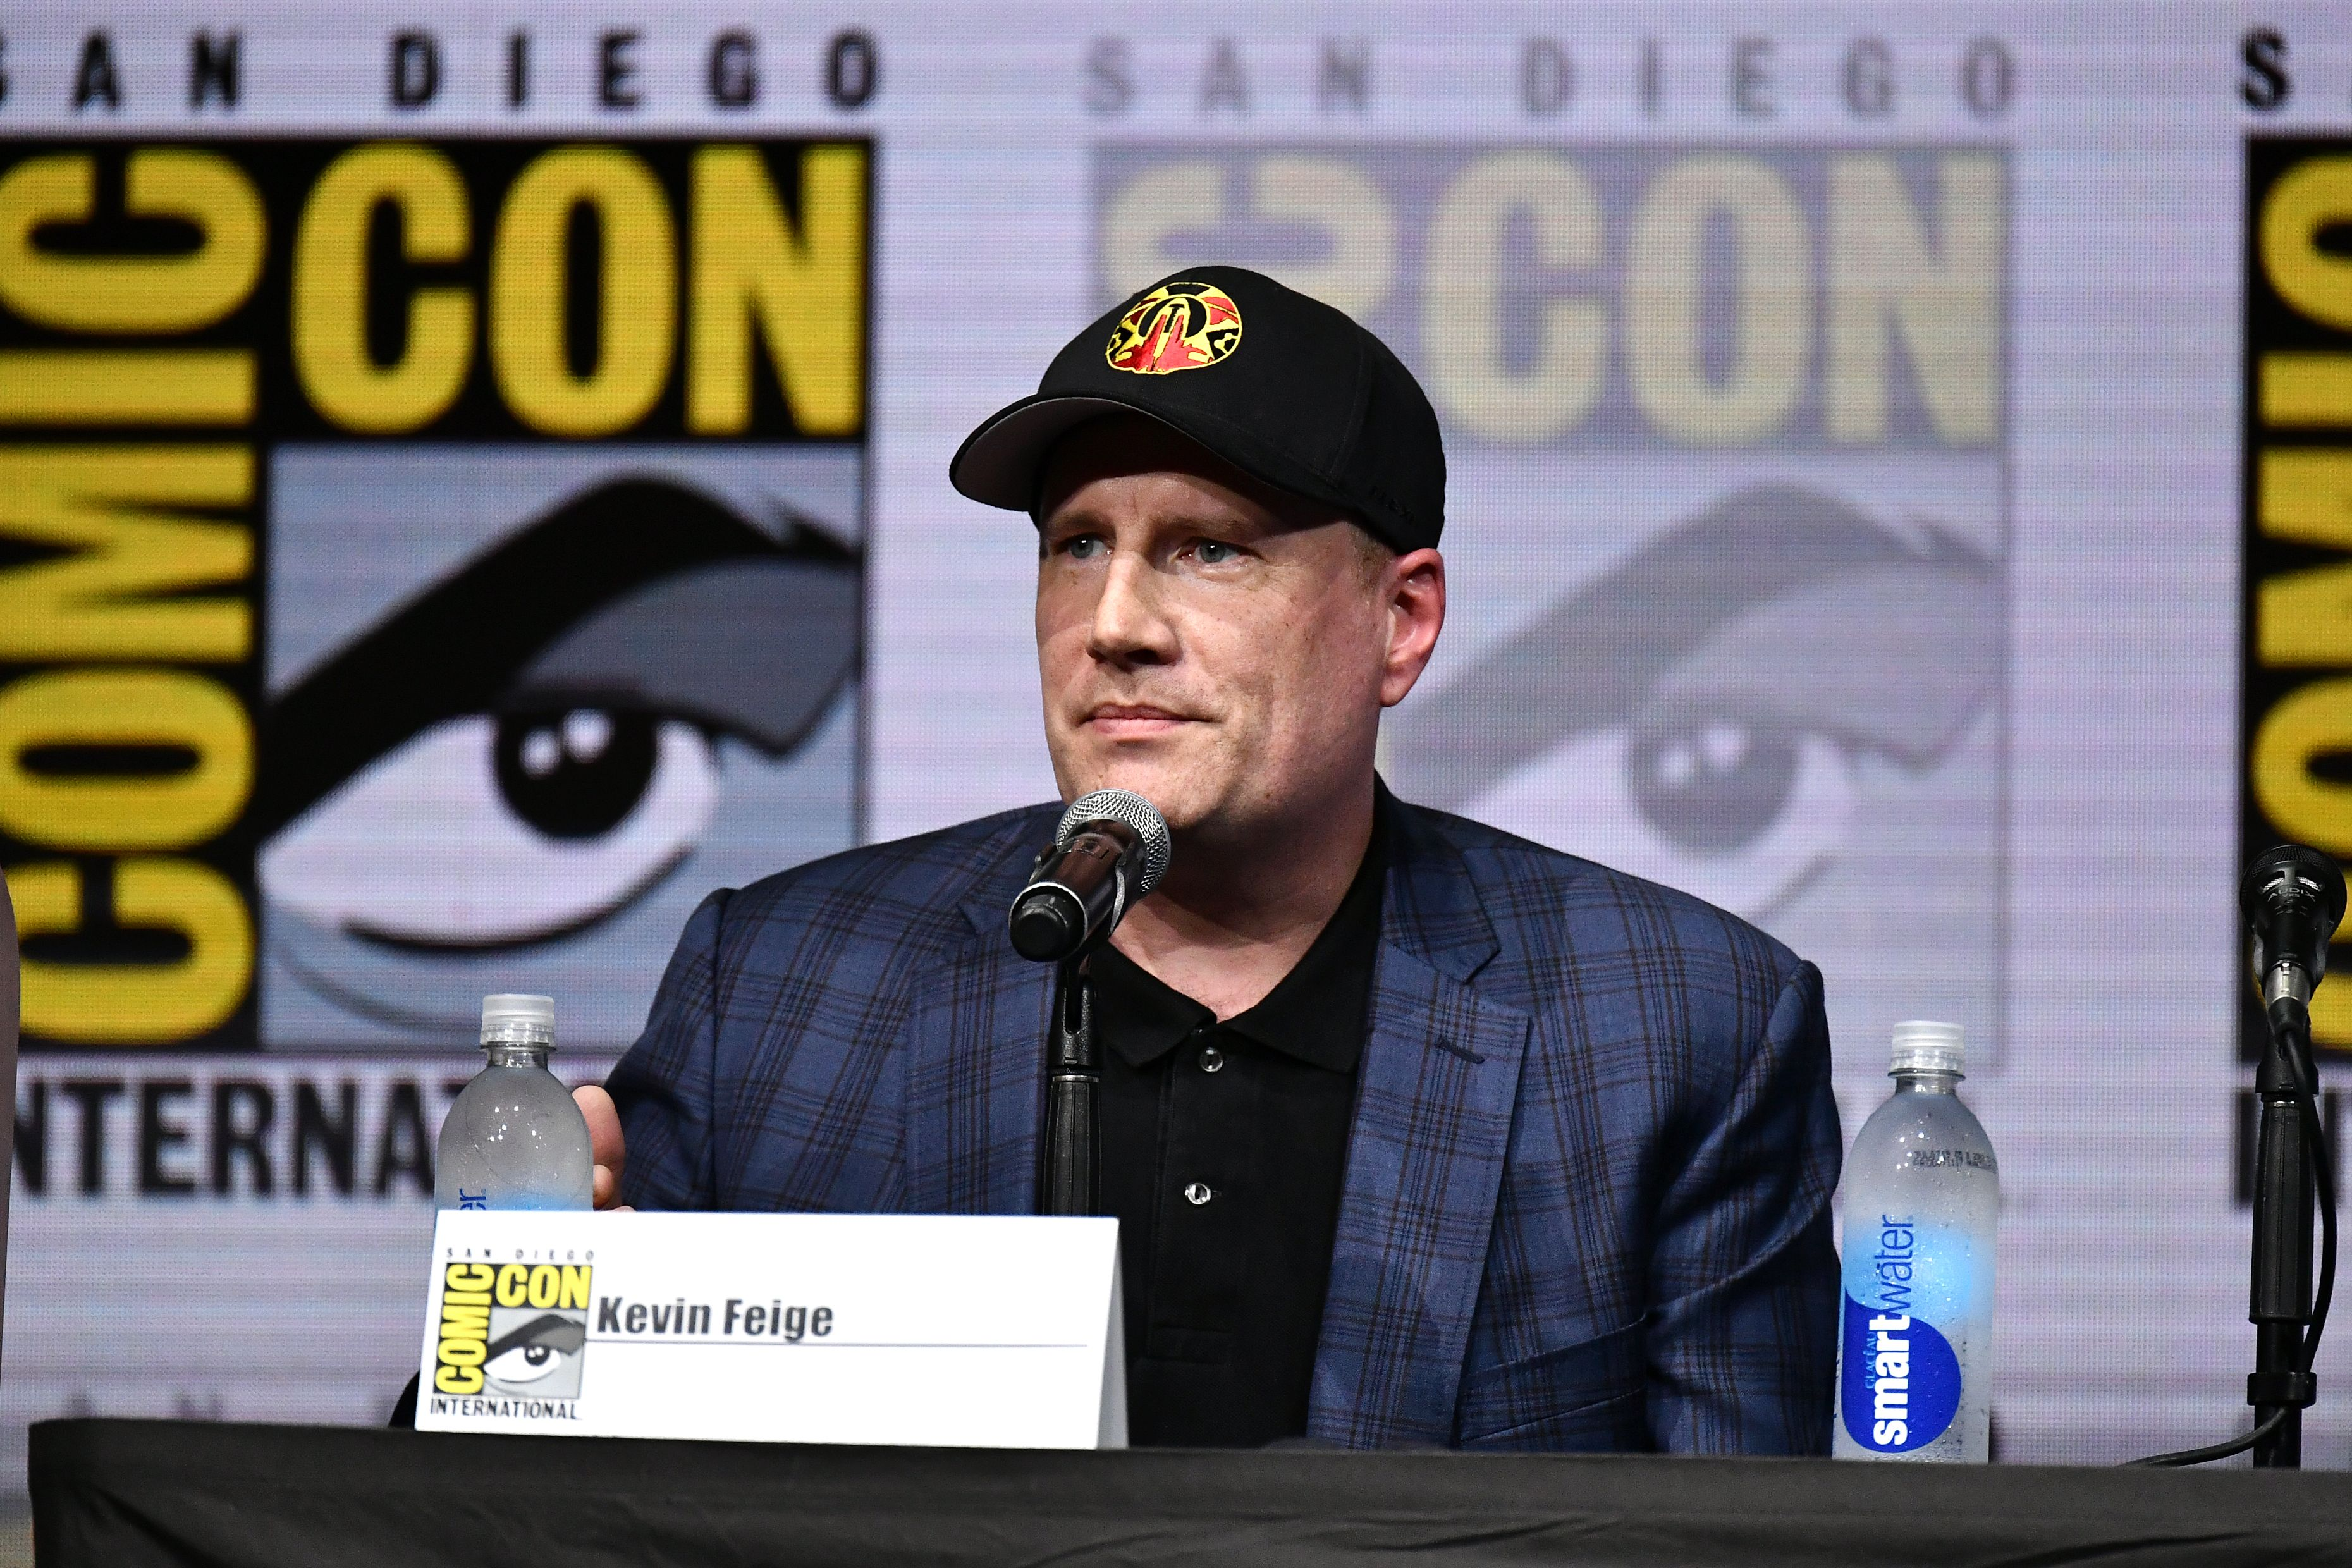 Marvel's Kevin Feige to Accept Producers Guild Showman of